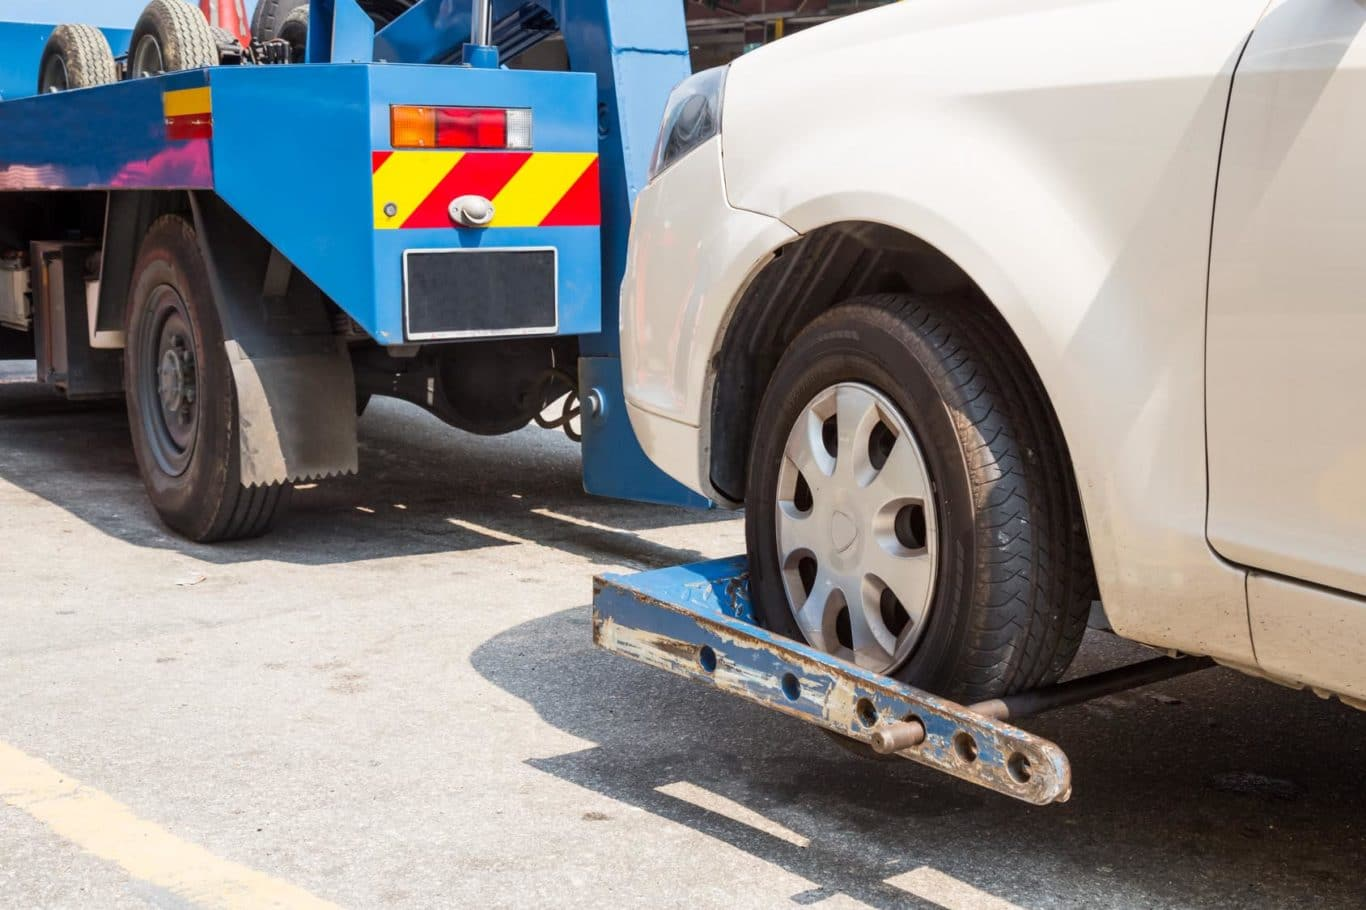 Ongar expert Breakdown Assistance services